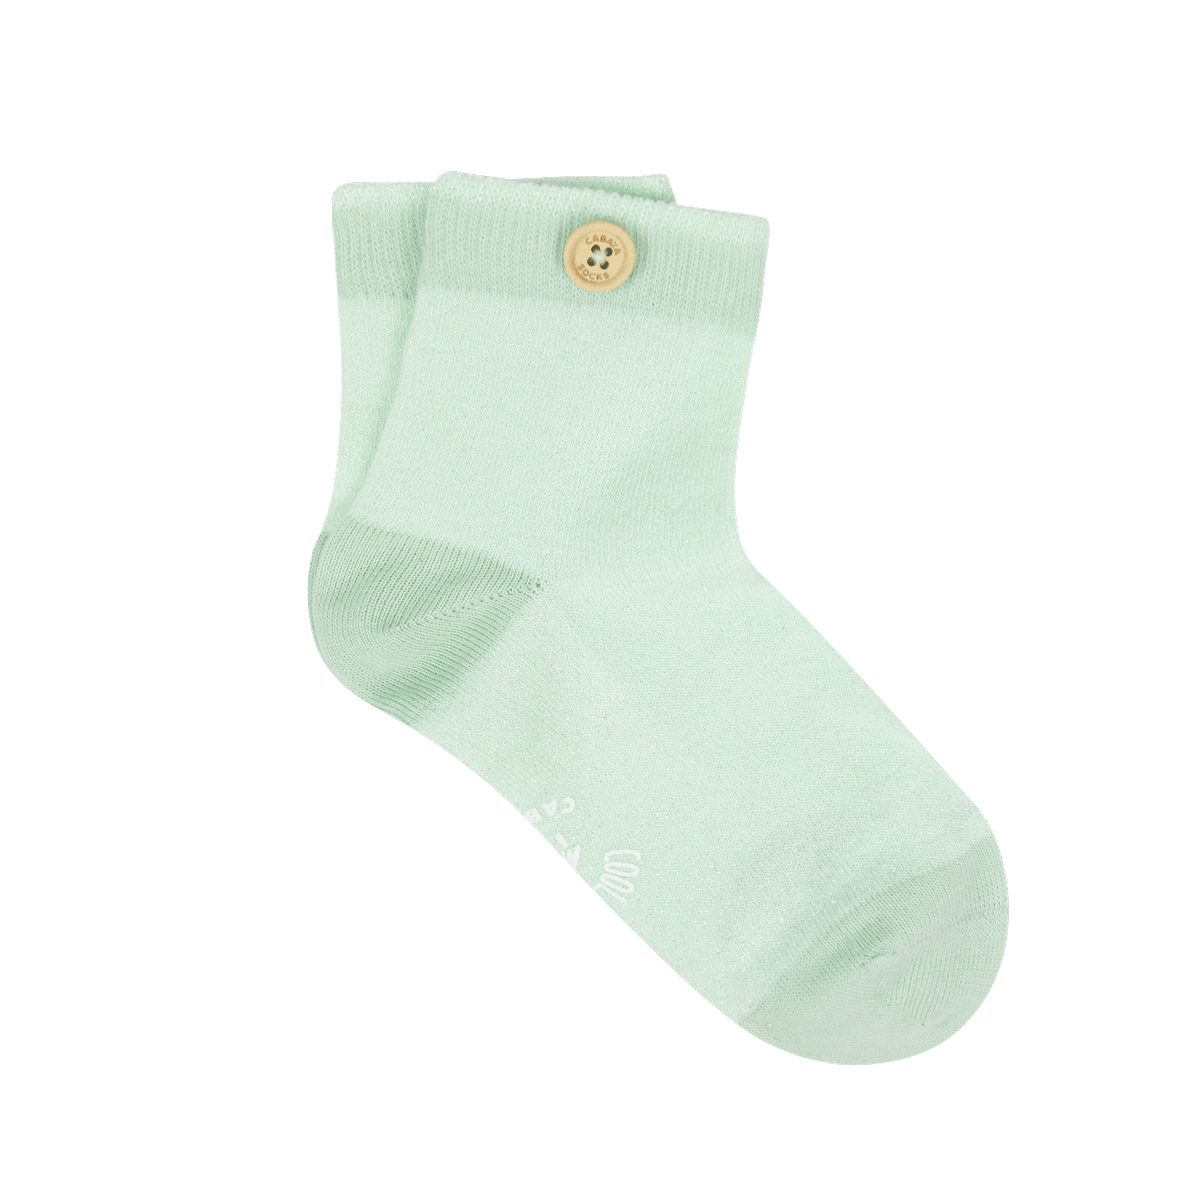 unloosable-socks-button-women-36-41-socks20-caro-gre